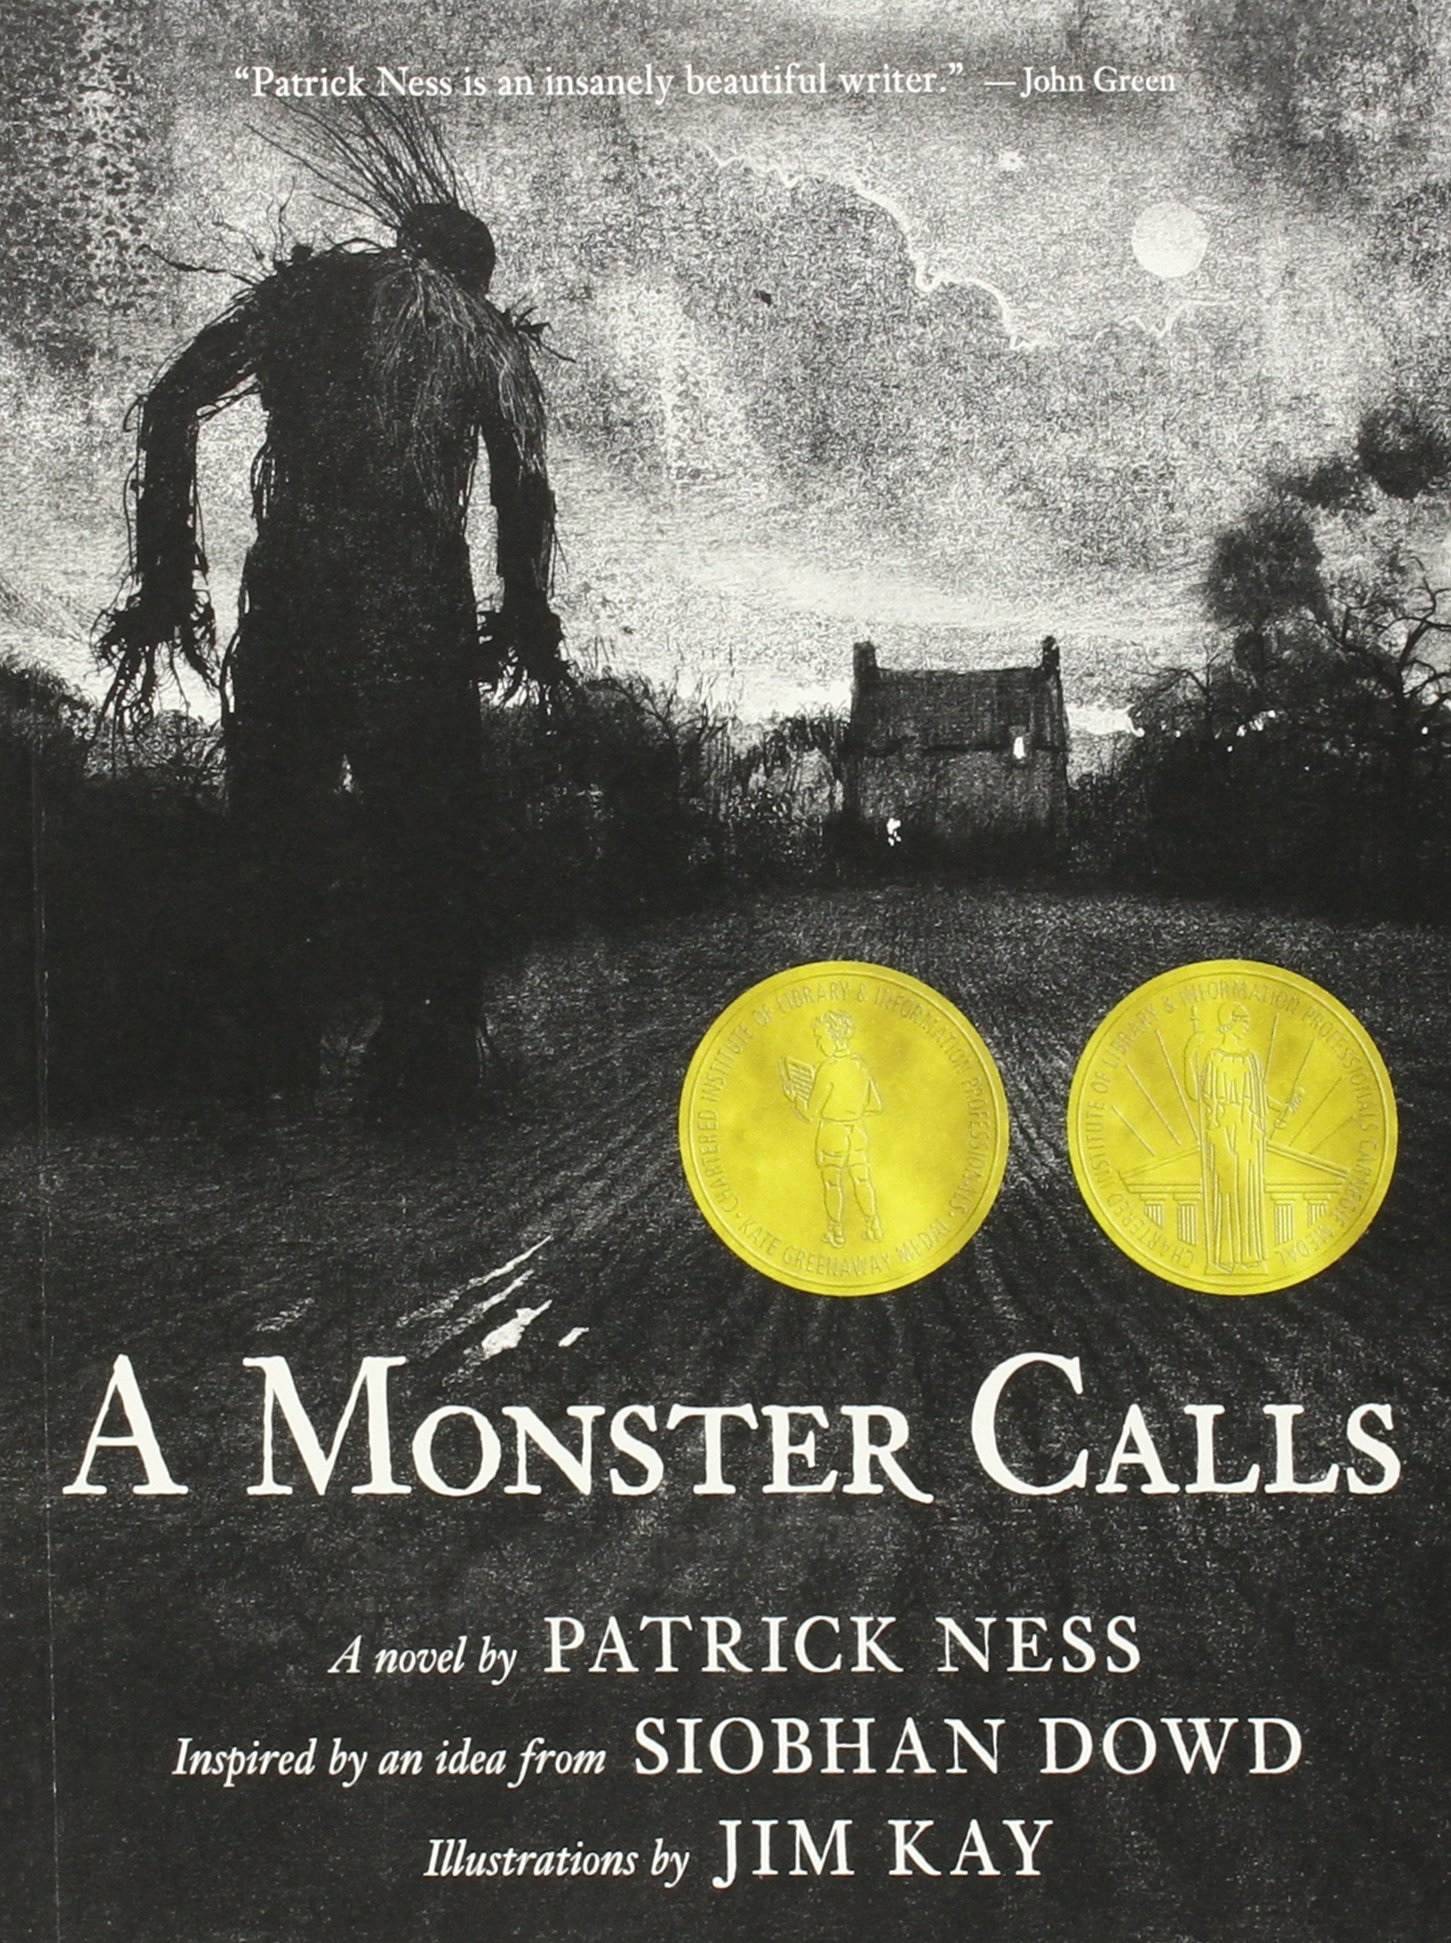 Sabbath Rest Book Talk: THE POWER OF STORY featuring A Monster Calls by Patrick Ness, inspired by Siobhan Dowd